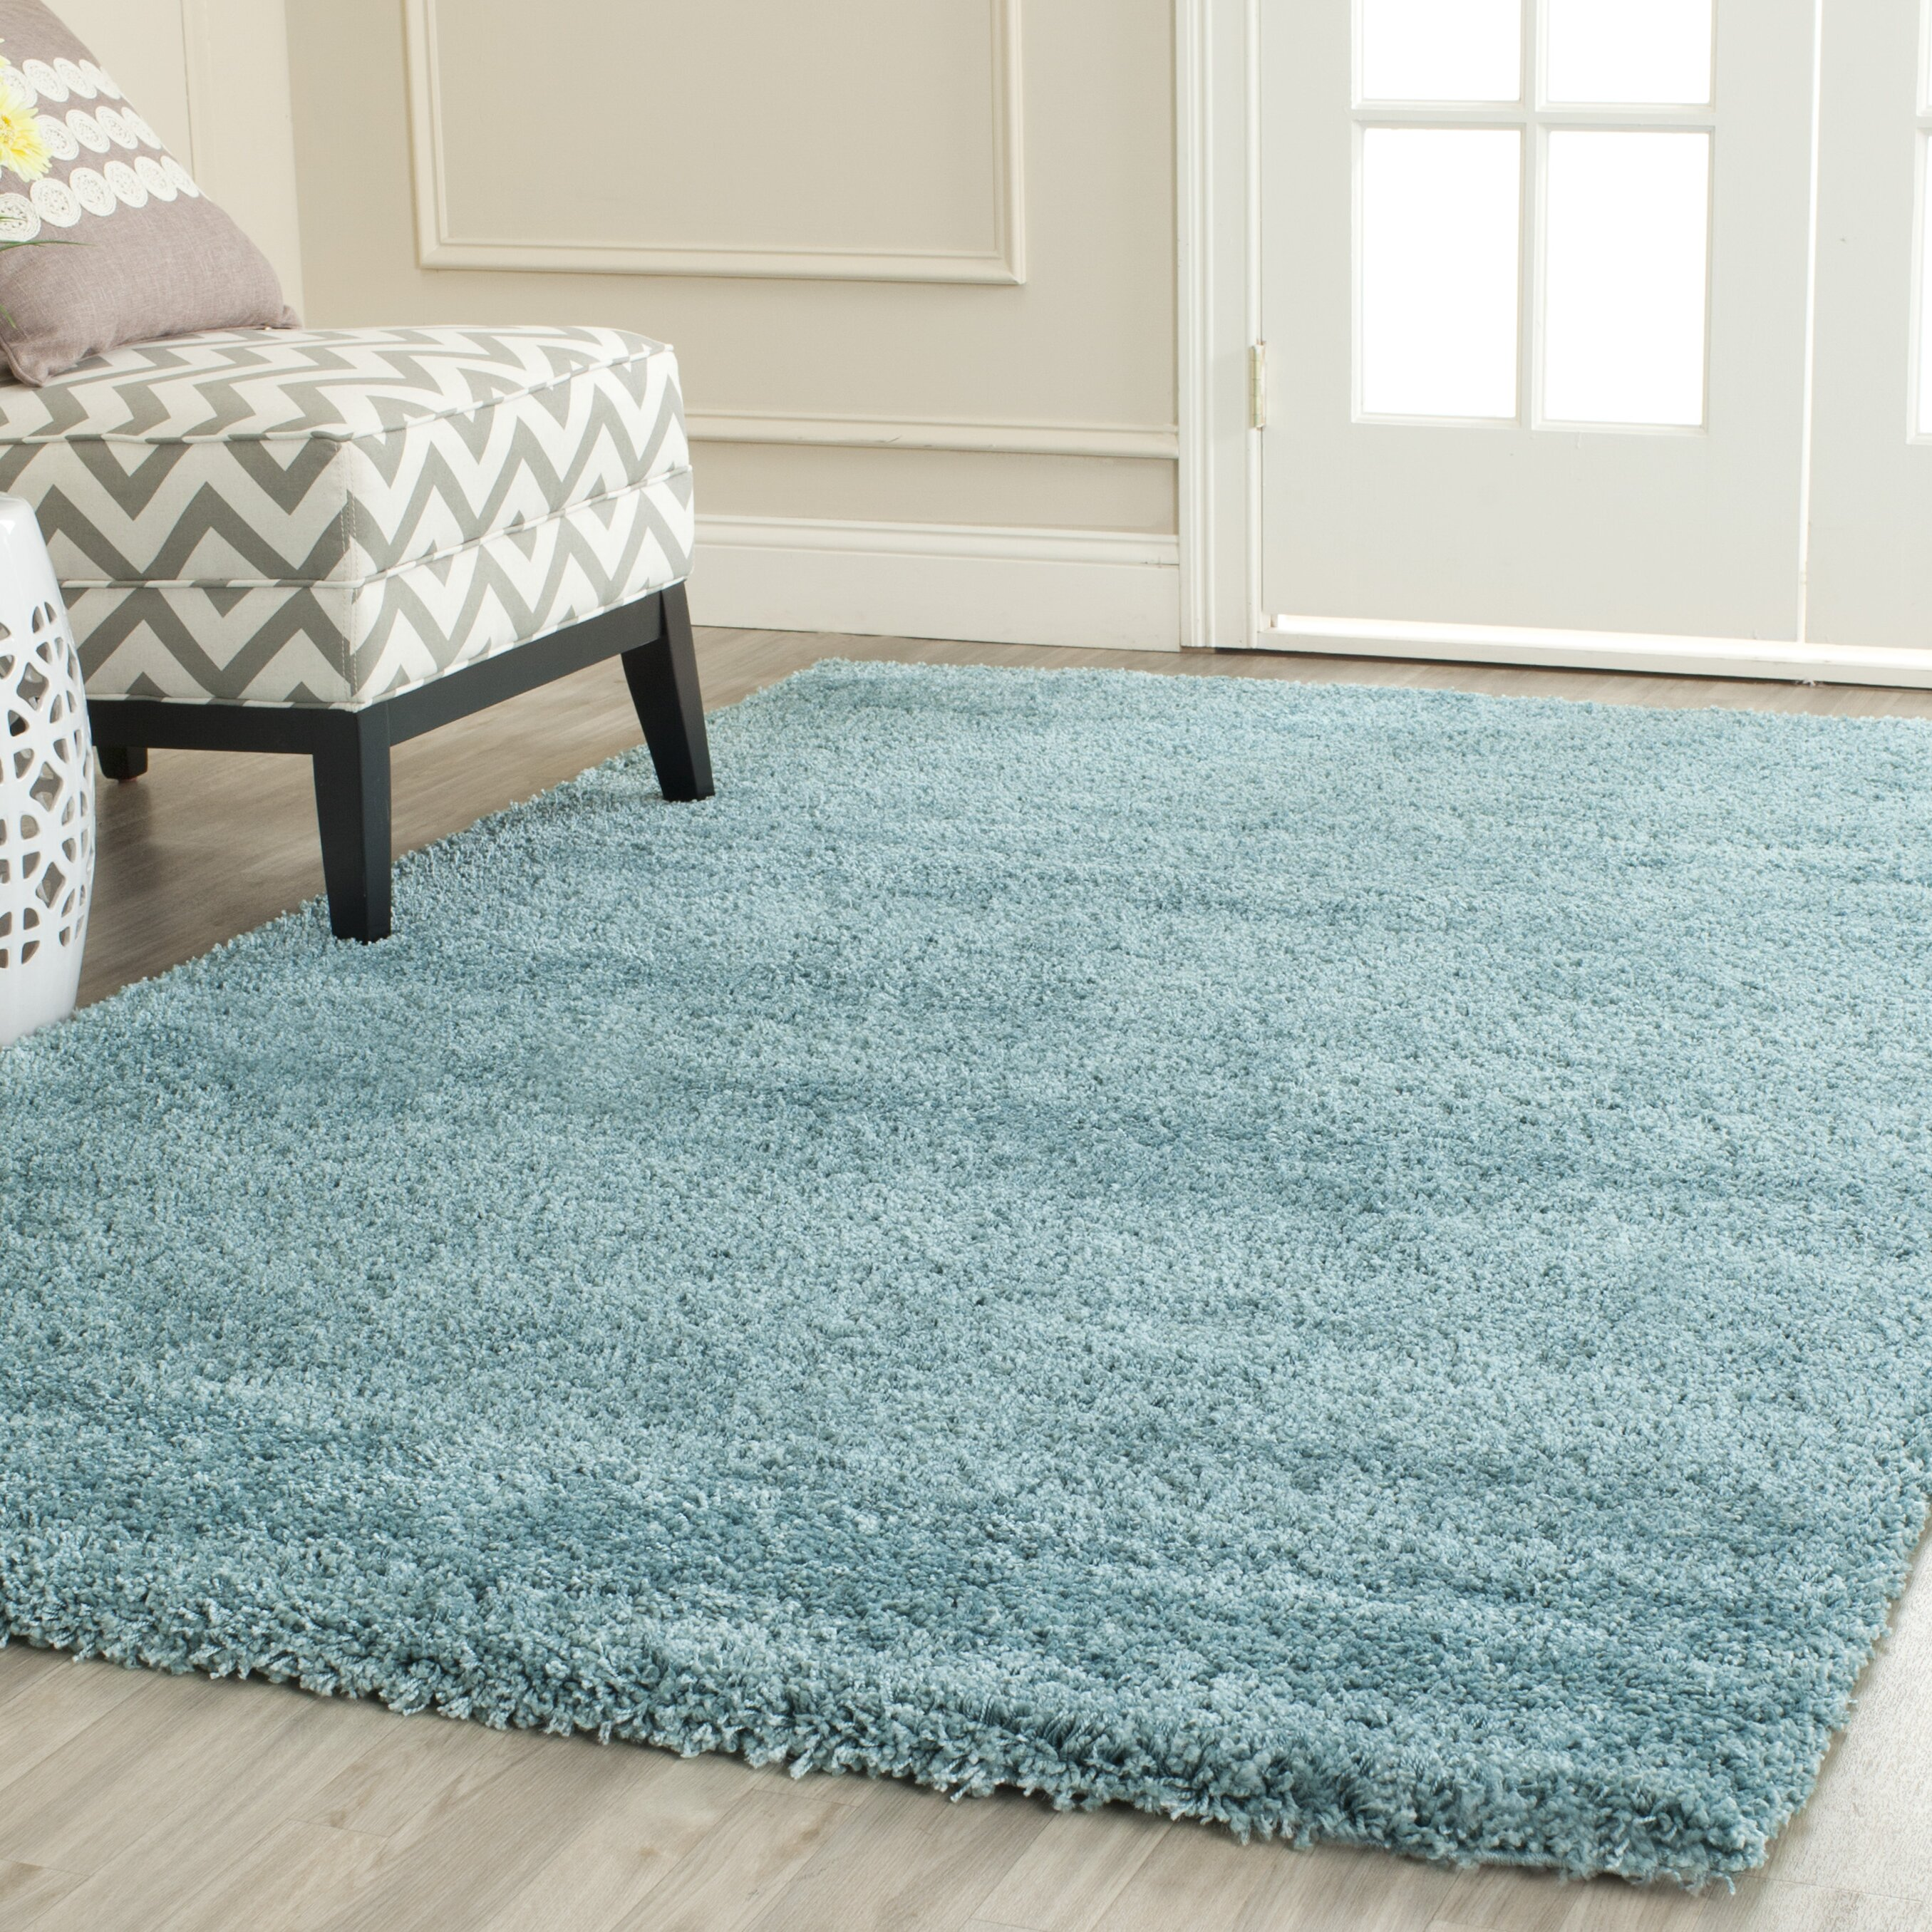 Safavieh Milan Shag Aqua Blue Area Rug Amp Reviews Wayfair